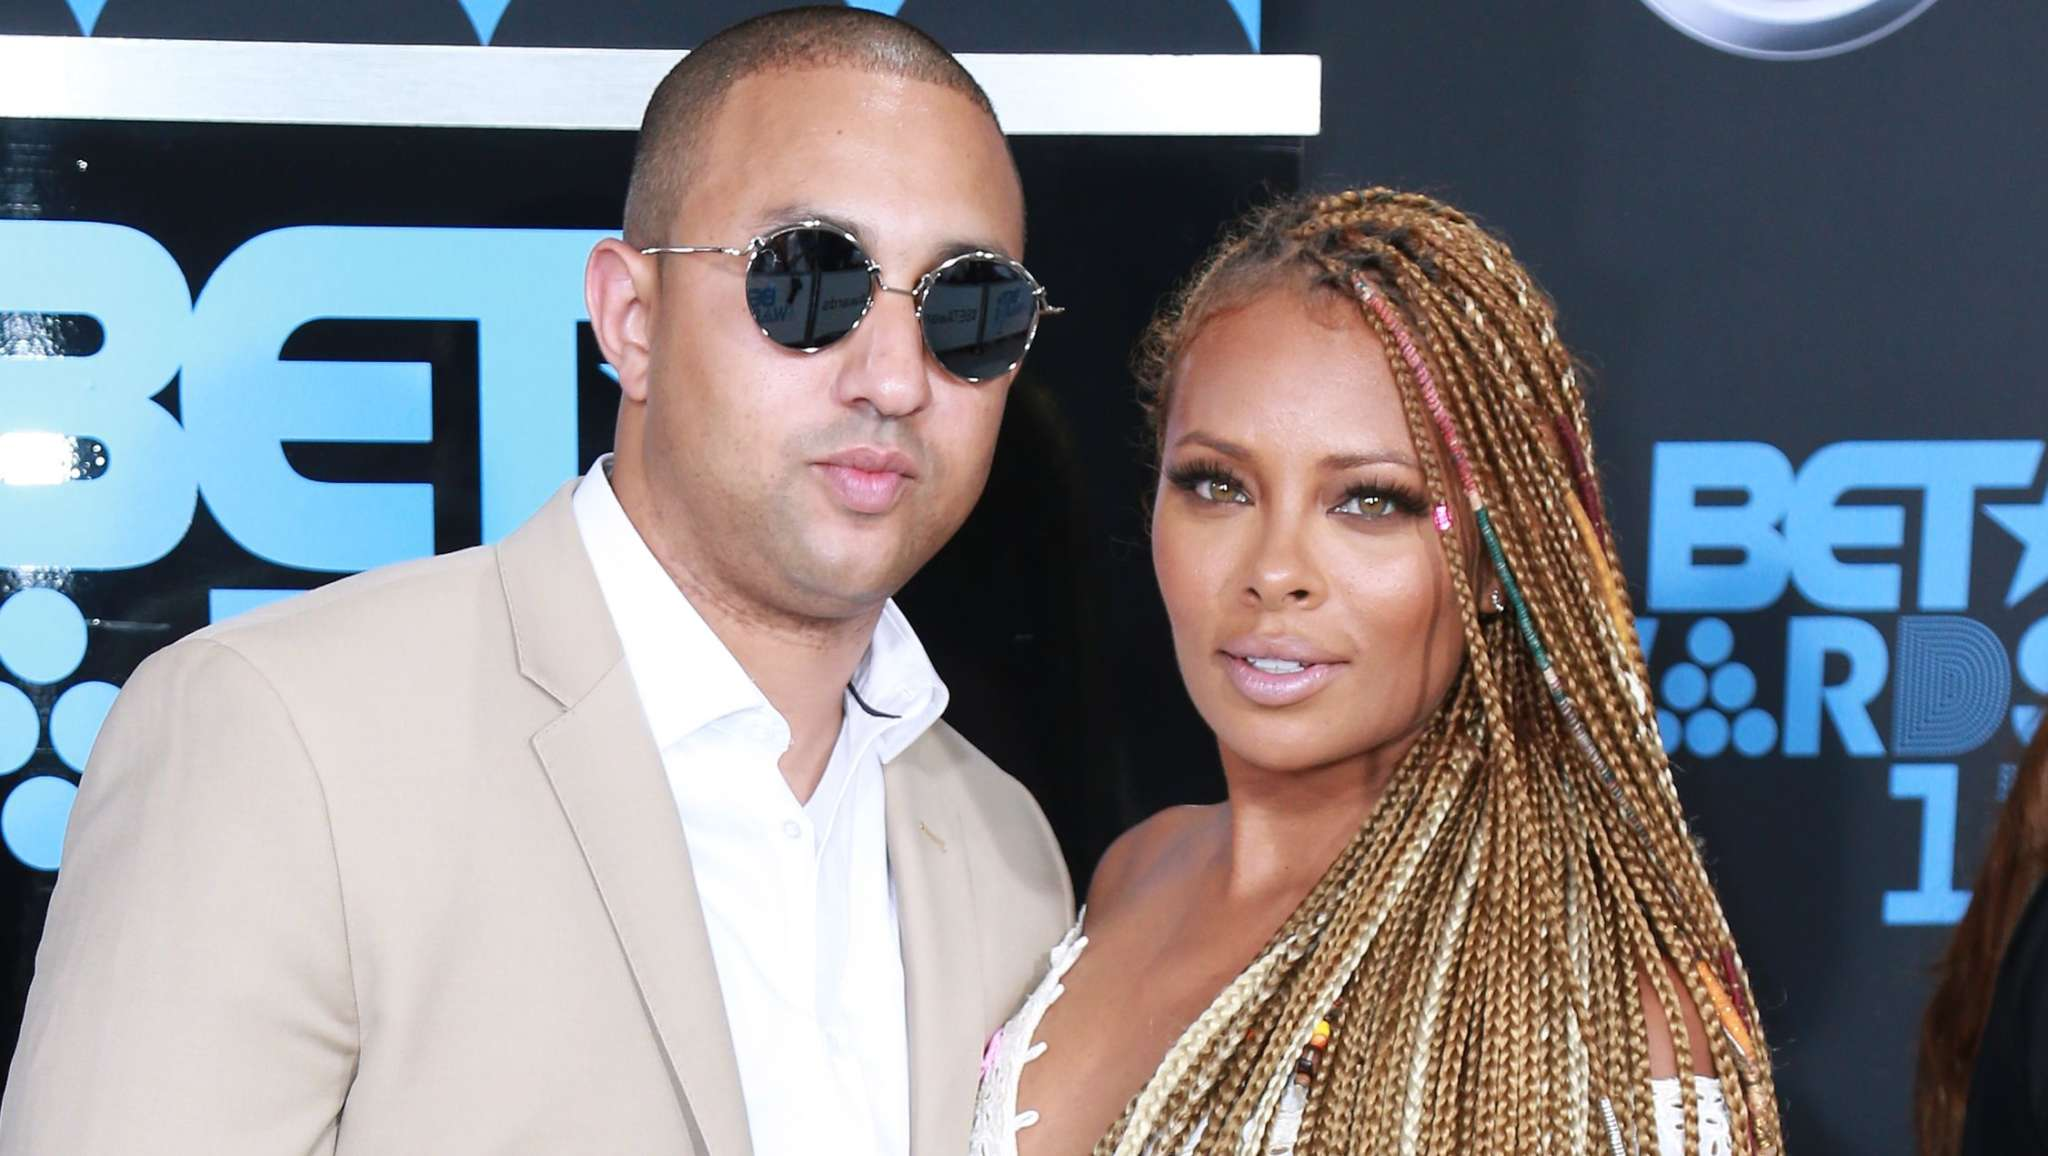 Eva Marcille Flaunts Her Love For Mike Sterling - See The Photo Session